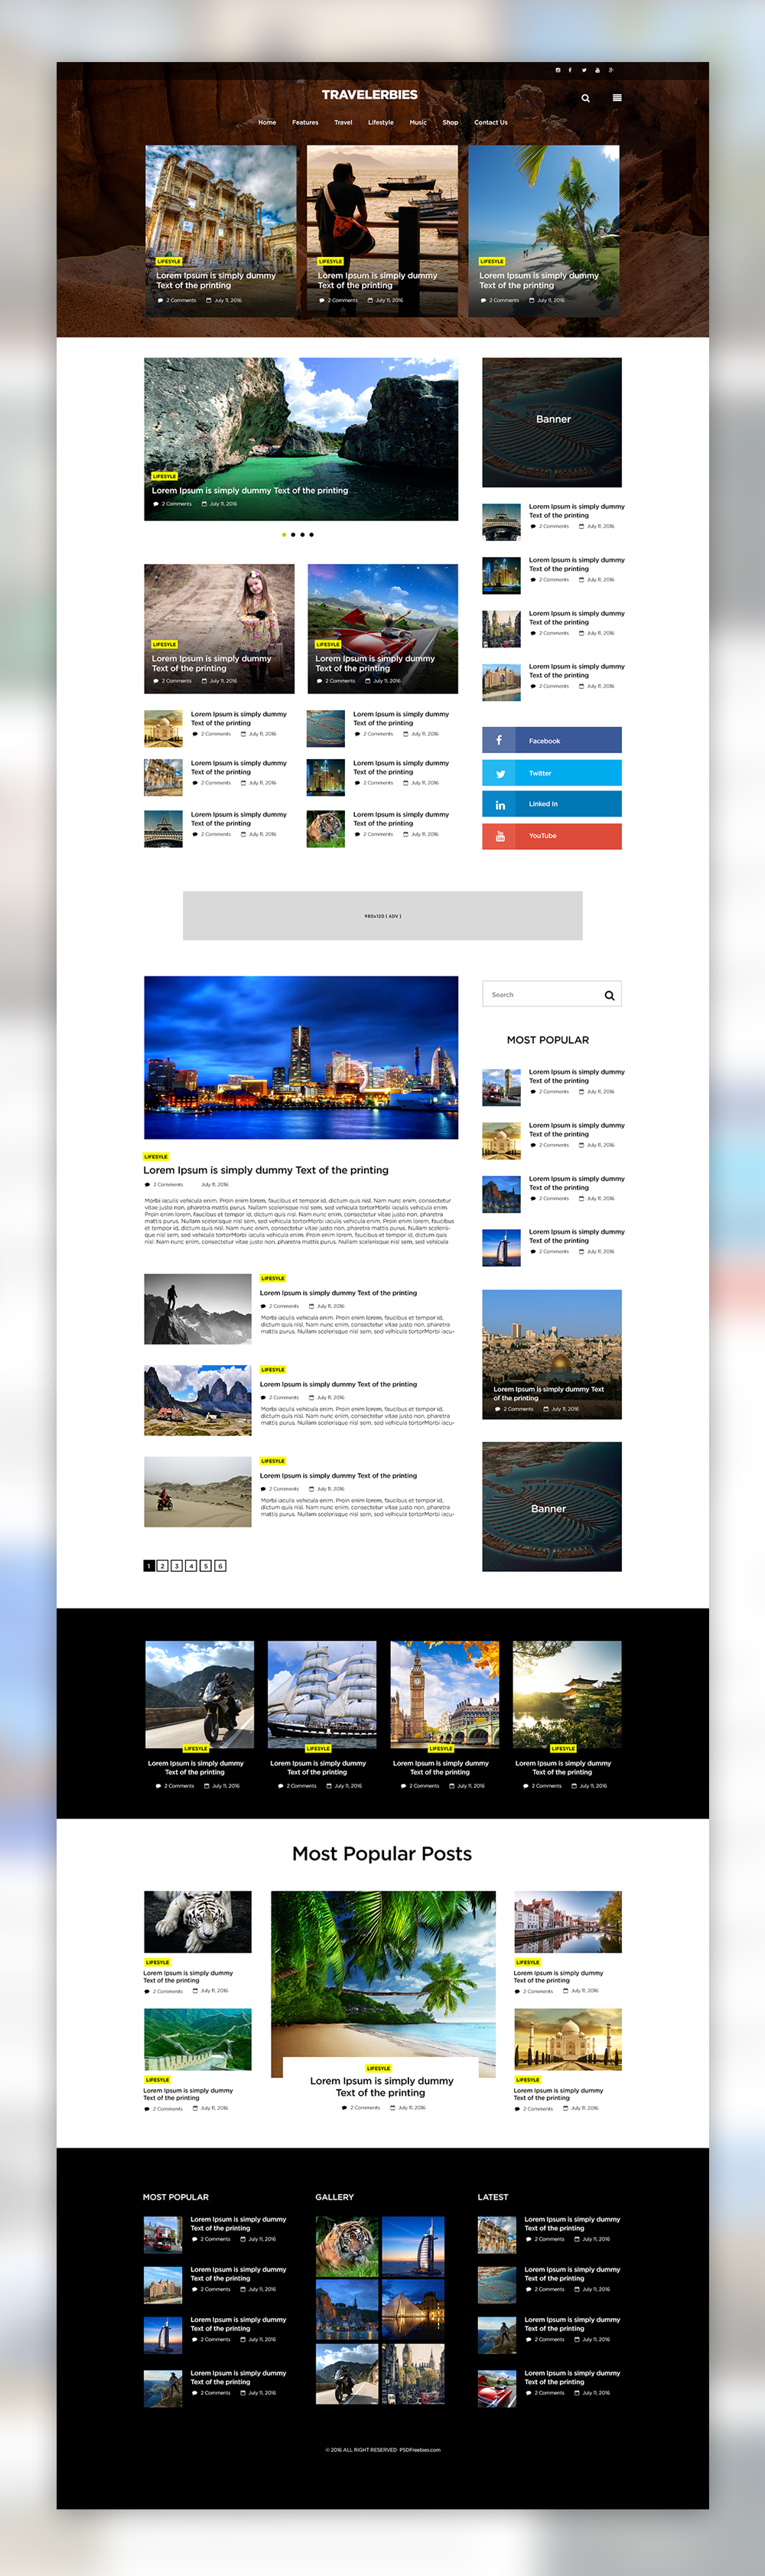 Travelerbies This Free Blog Template Is A Clean And Elegant Blog Theme Created For Those People That Want Psd Template Free Blog Templates Free Travel Blog